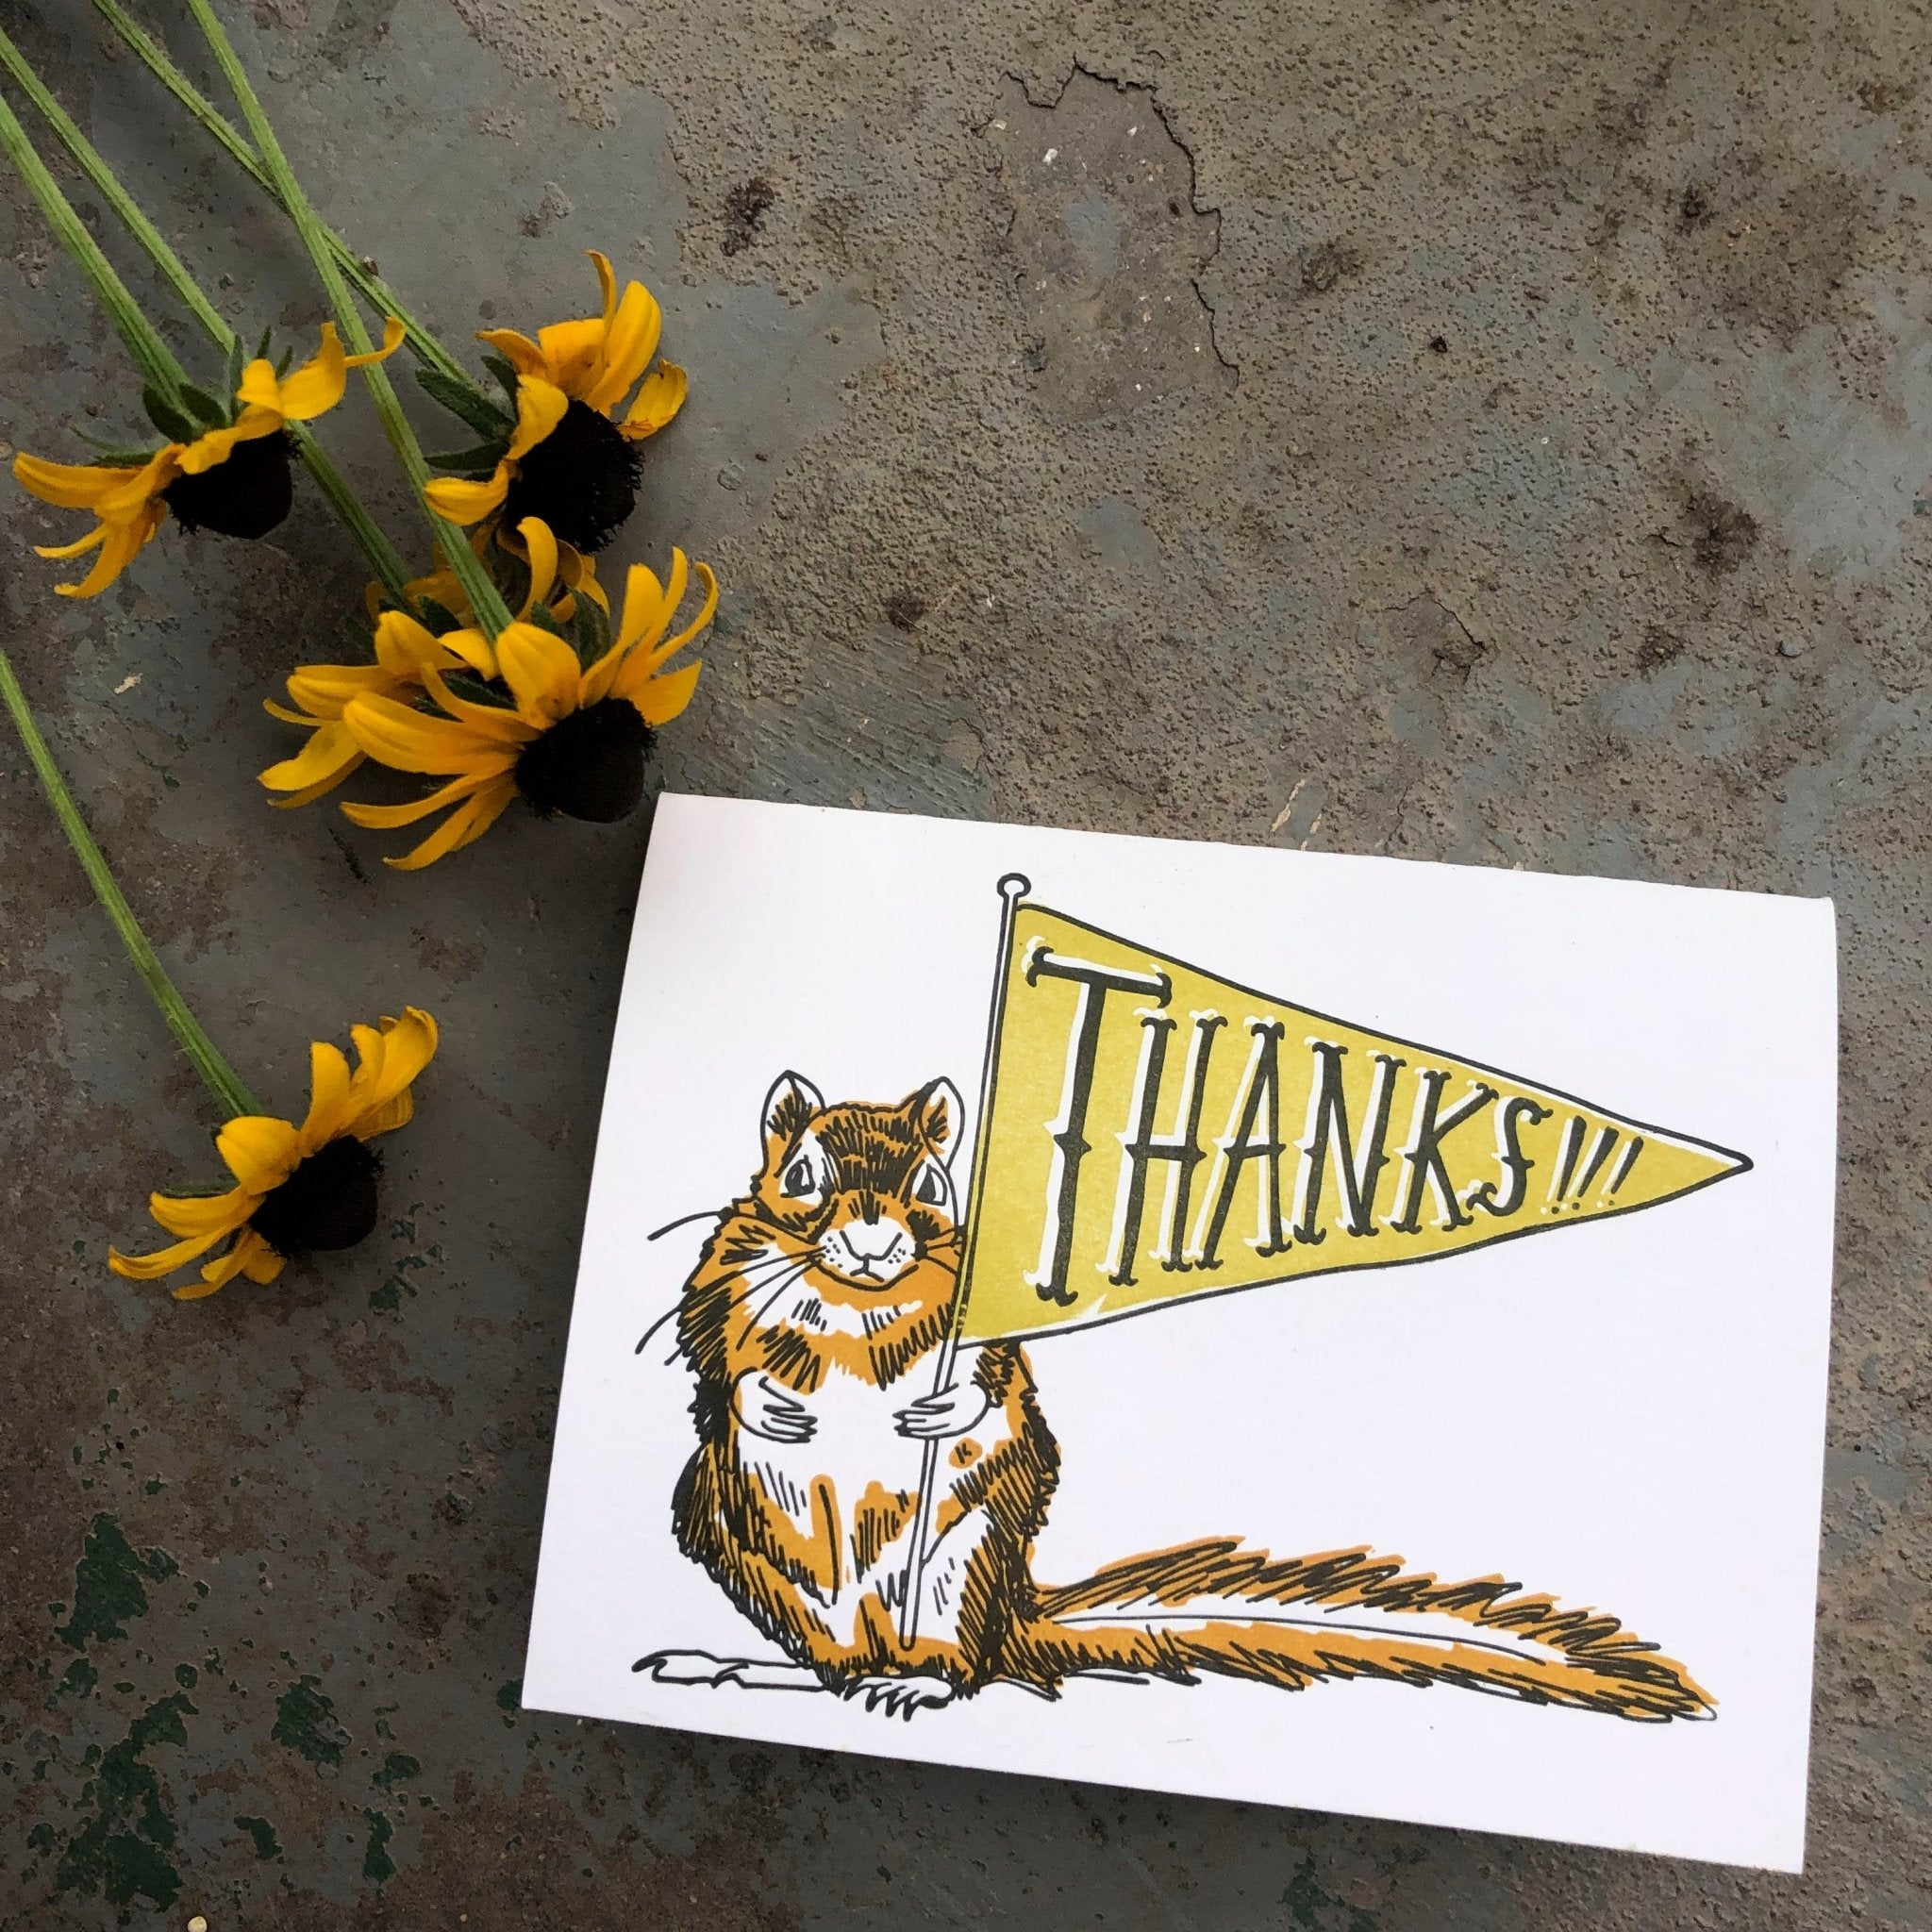 Chipmunk Thanks Card - Ratbee Press -Freehand Market